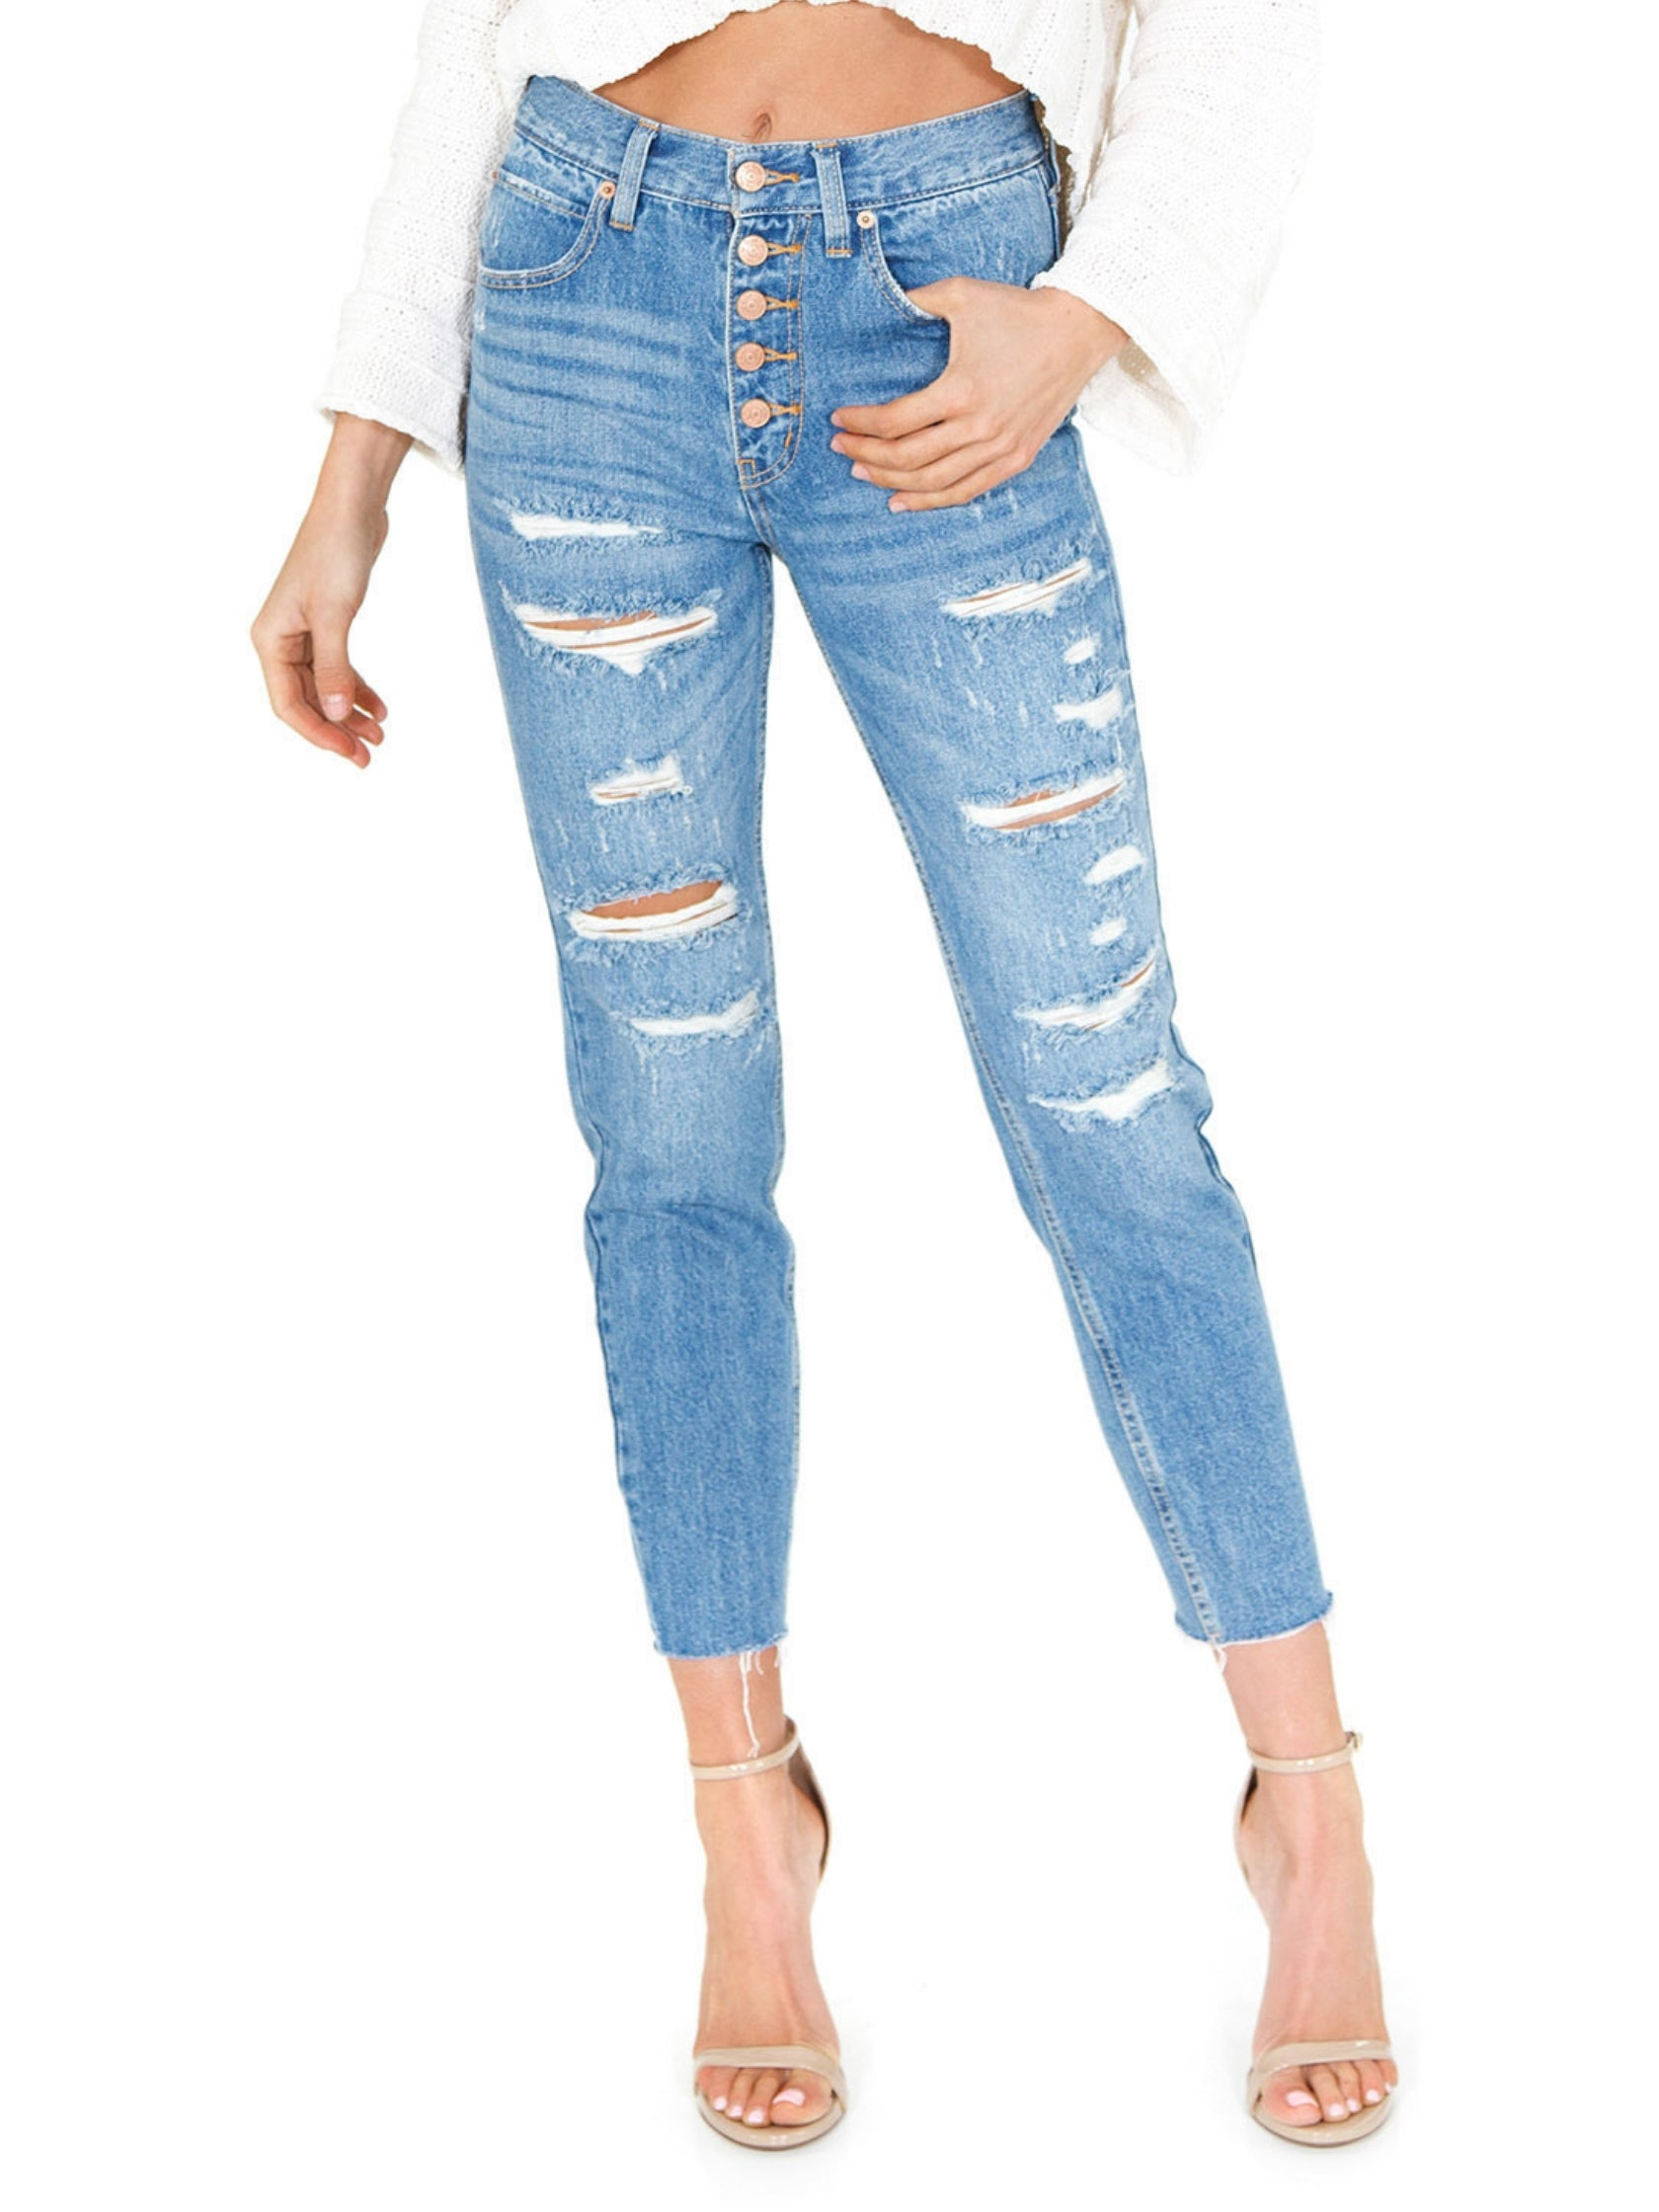 Woman wearing a bottoms rental from Free People called Blossom Rigid Skinny Jeans